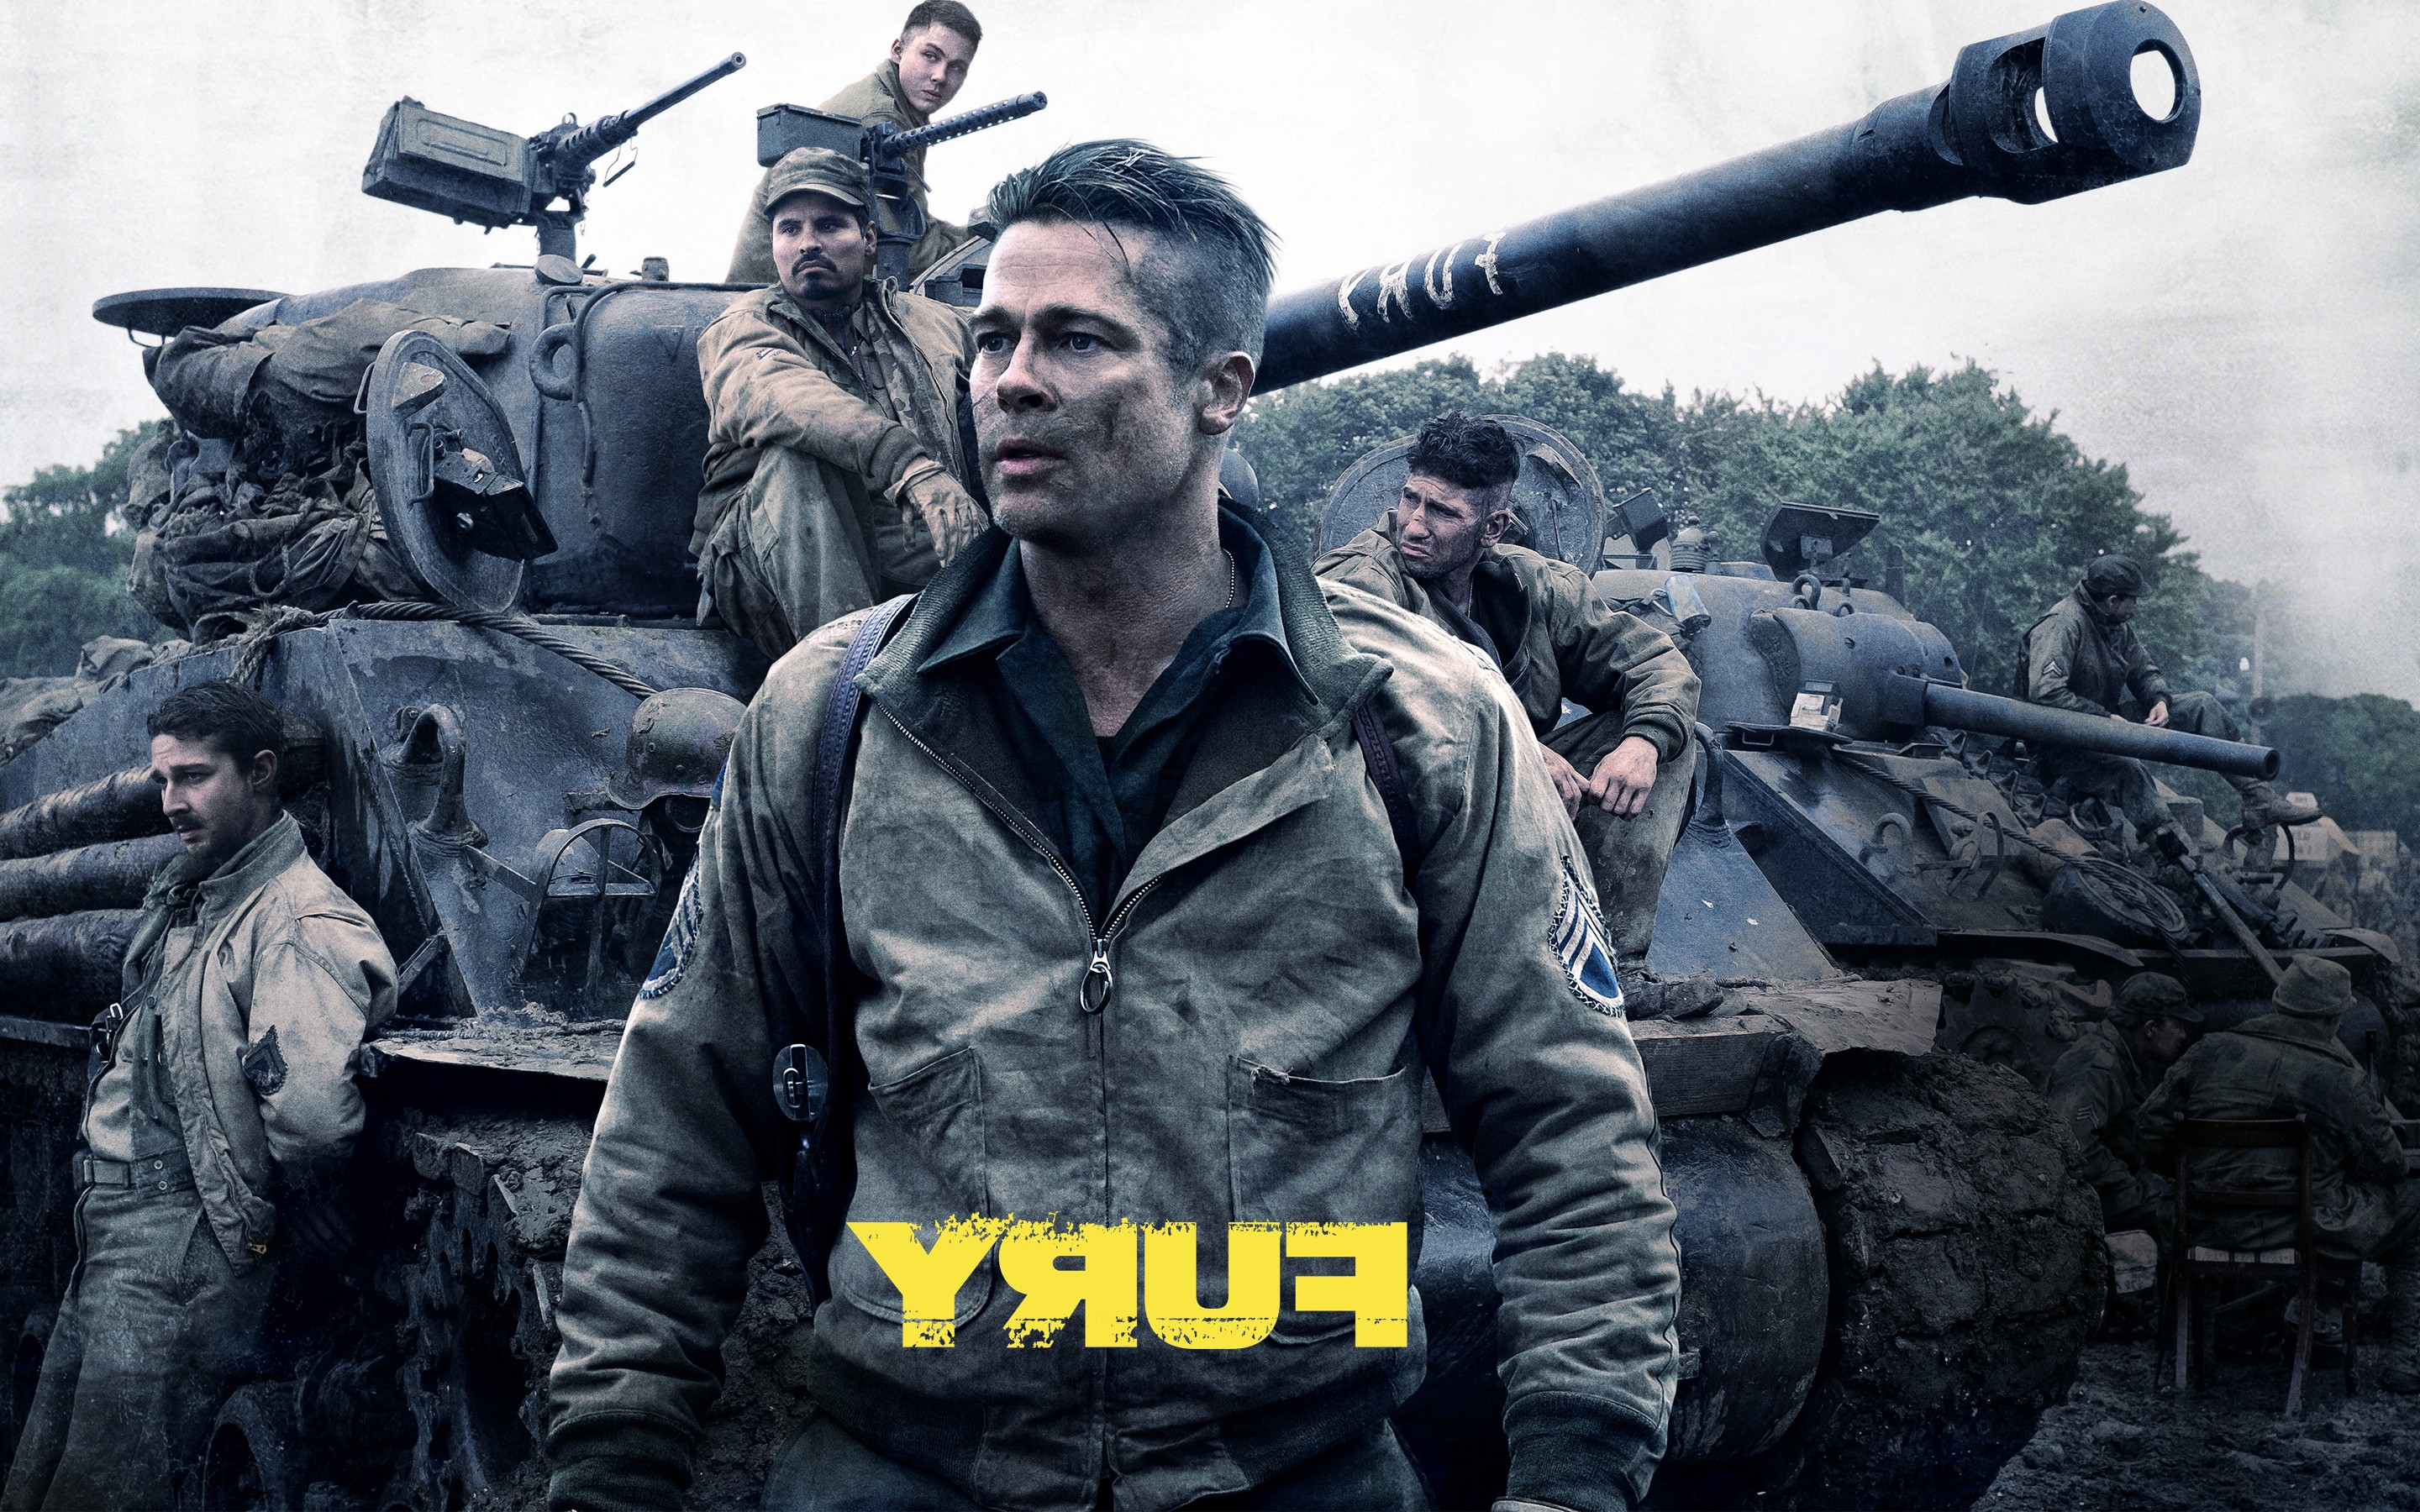 Images Of The Movie Fury: Fury Movie, HD Movies, 4k Wallpapers, Images, Backgrounds